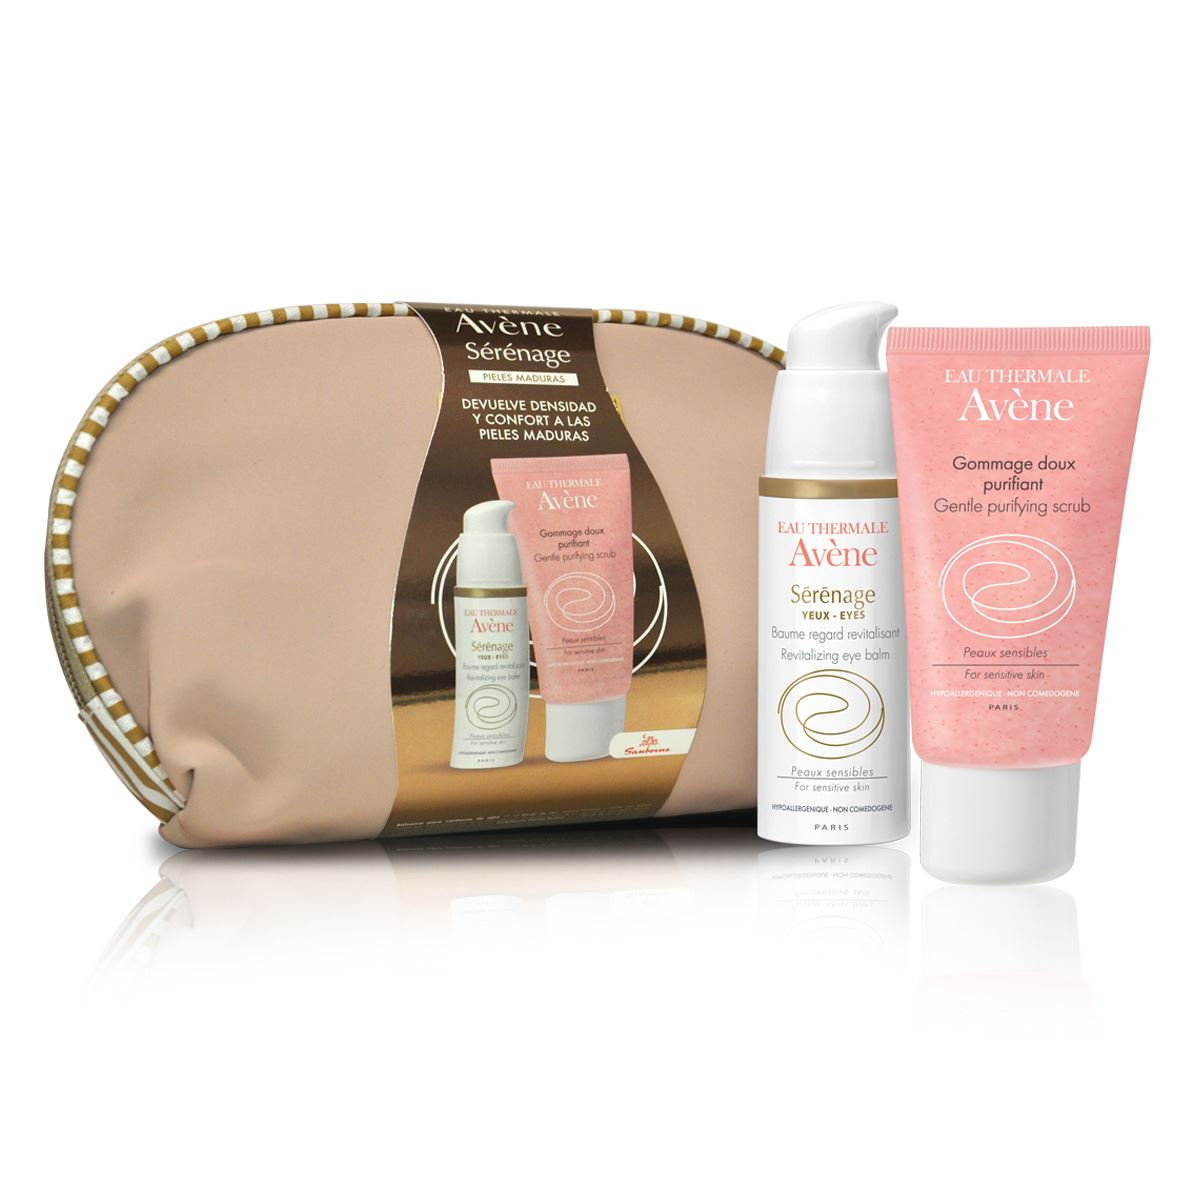 Kit sérénage ojos de 15 ml + crema exfoliante facial de 50 ml de avene  - Sanborns